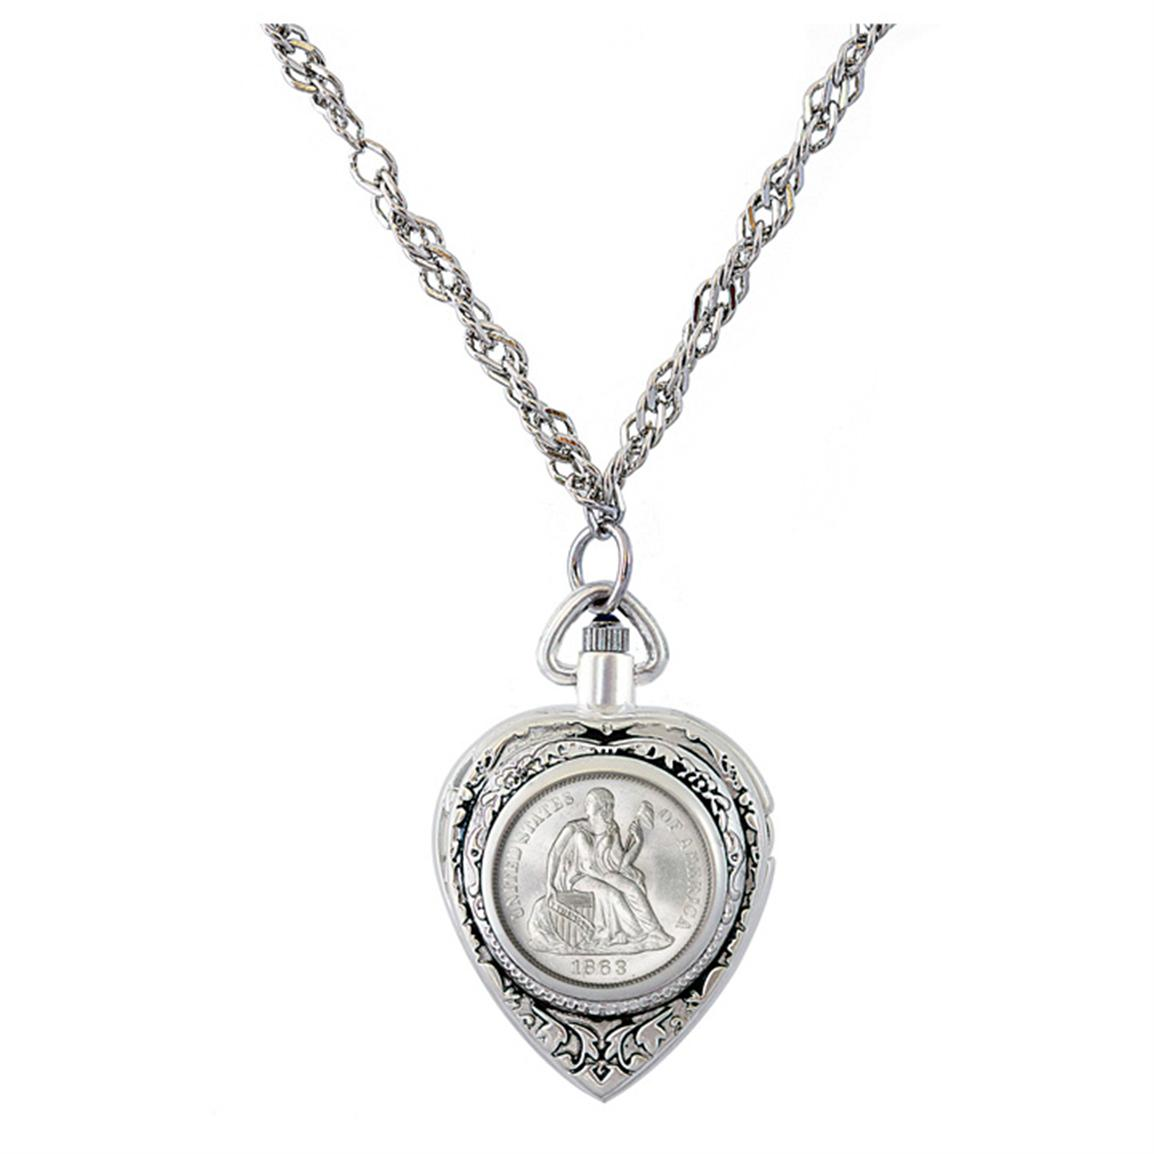 Civil War Coin Heart Watch Pendant Necklace from American Coin Treasures